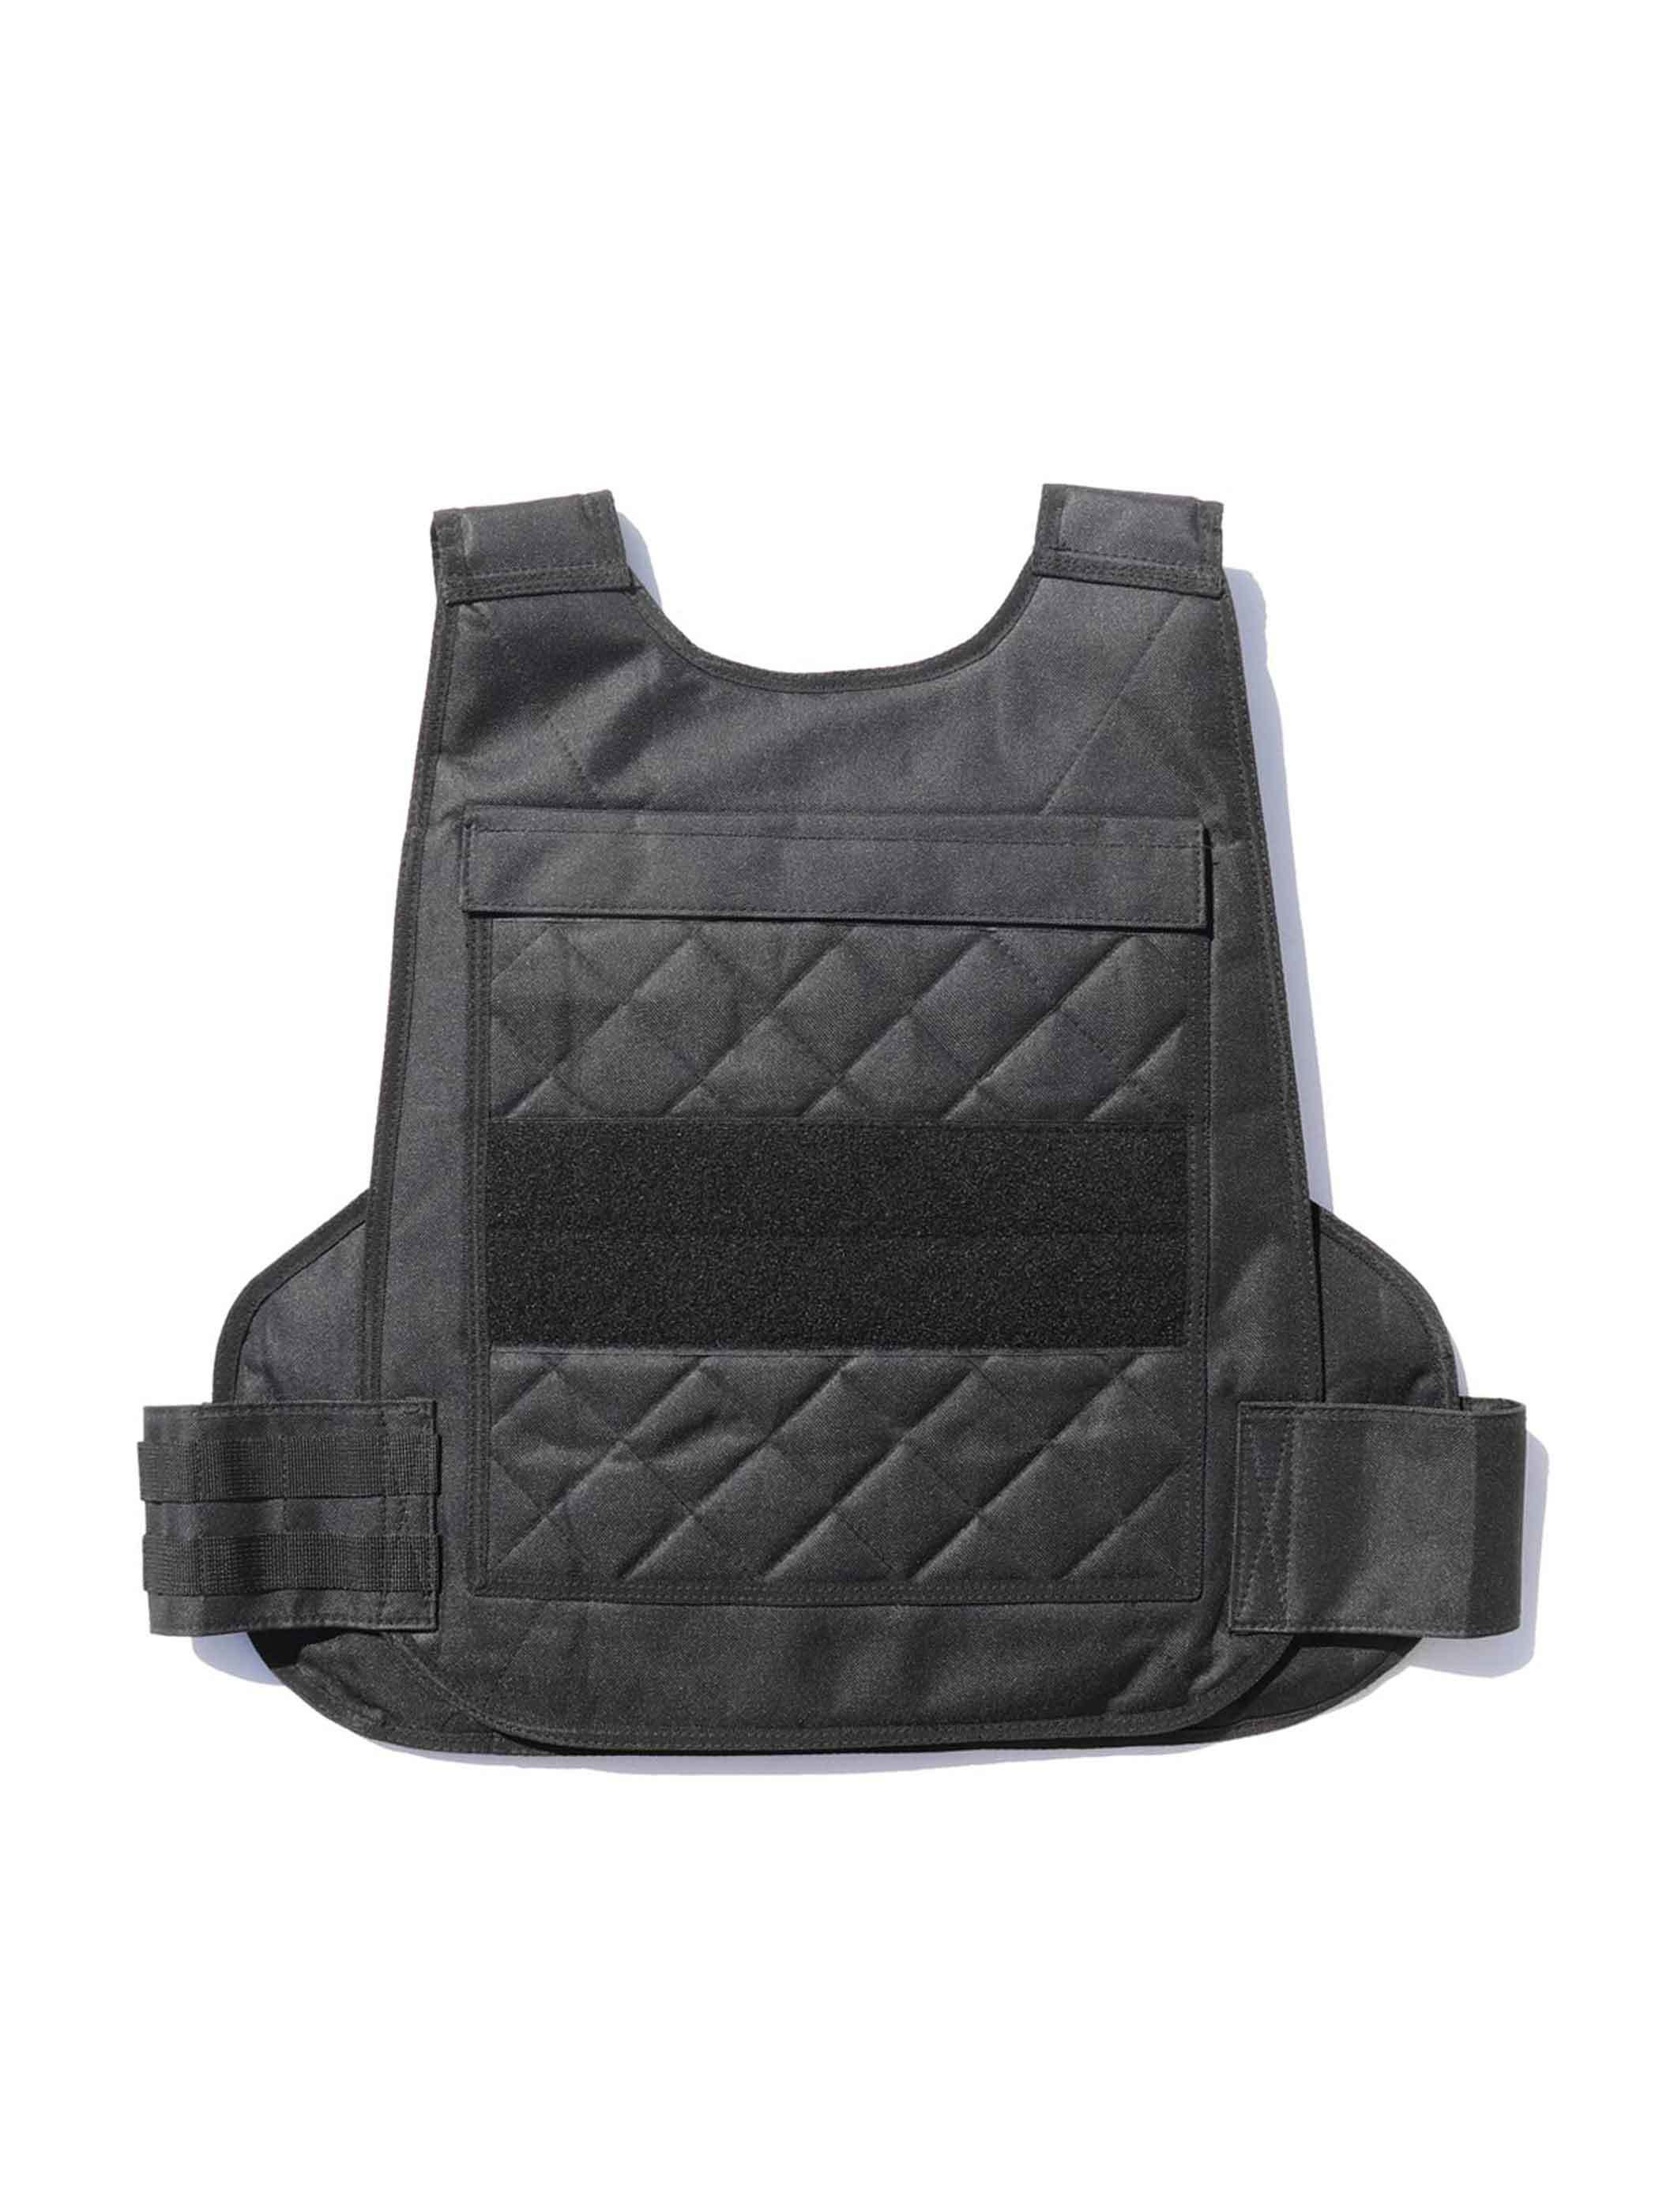 00's KENYA MISSION CONTROL Black Tactical Vest [FREE]